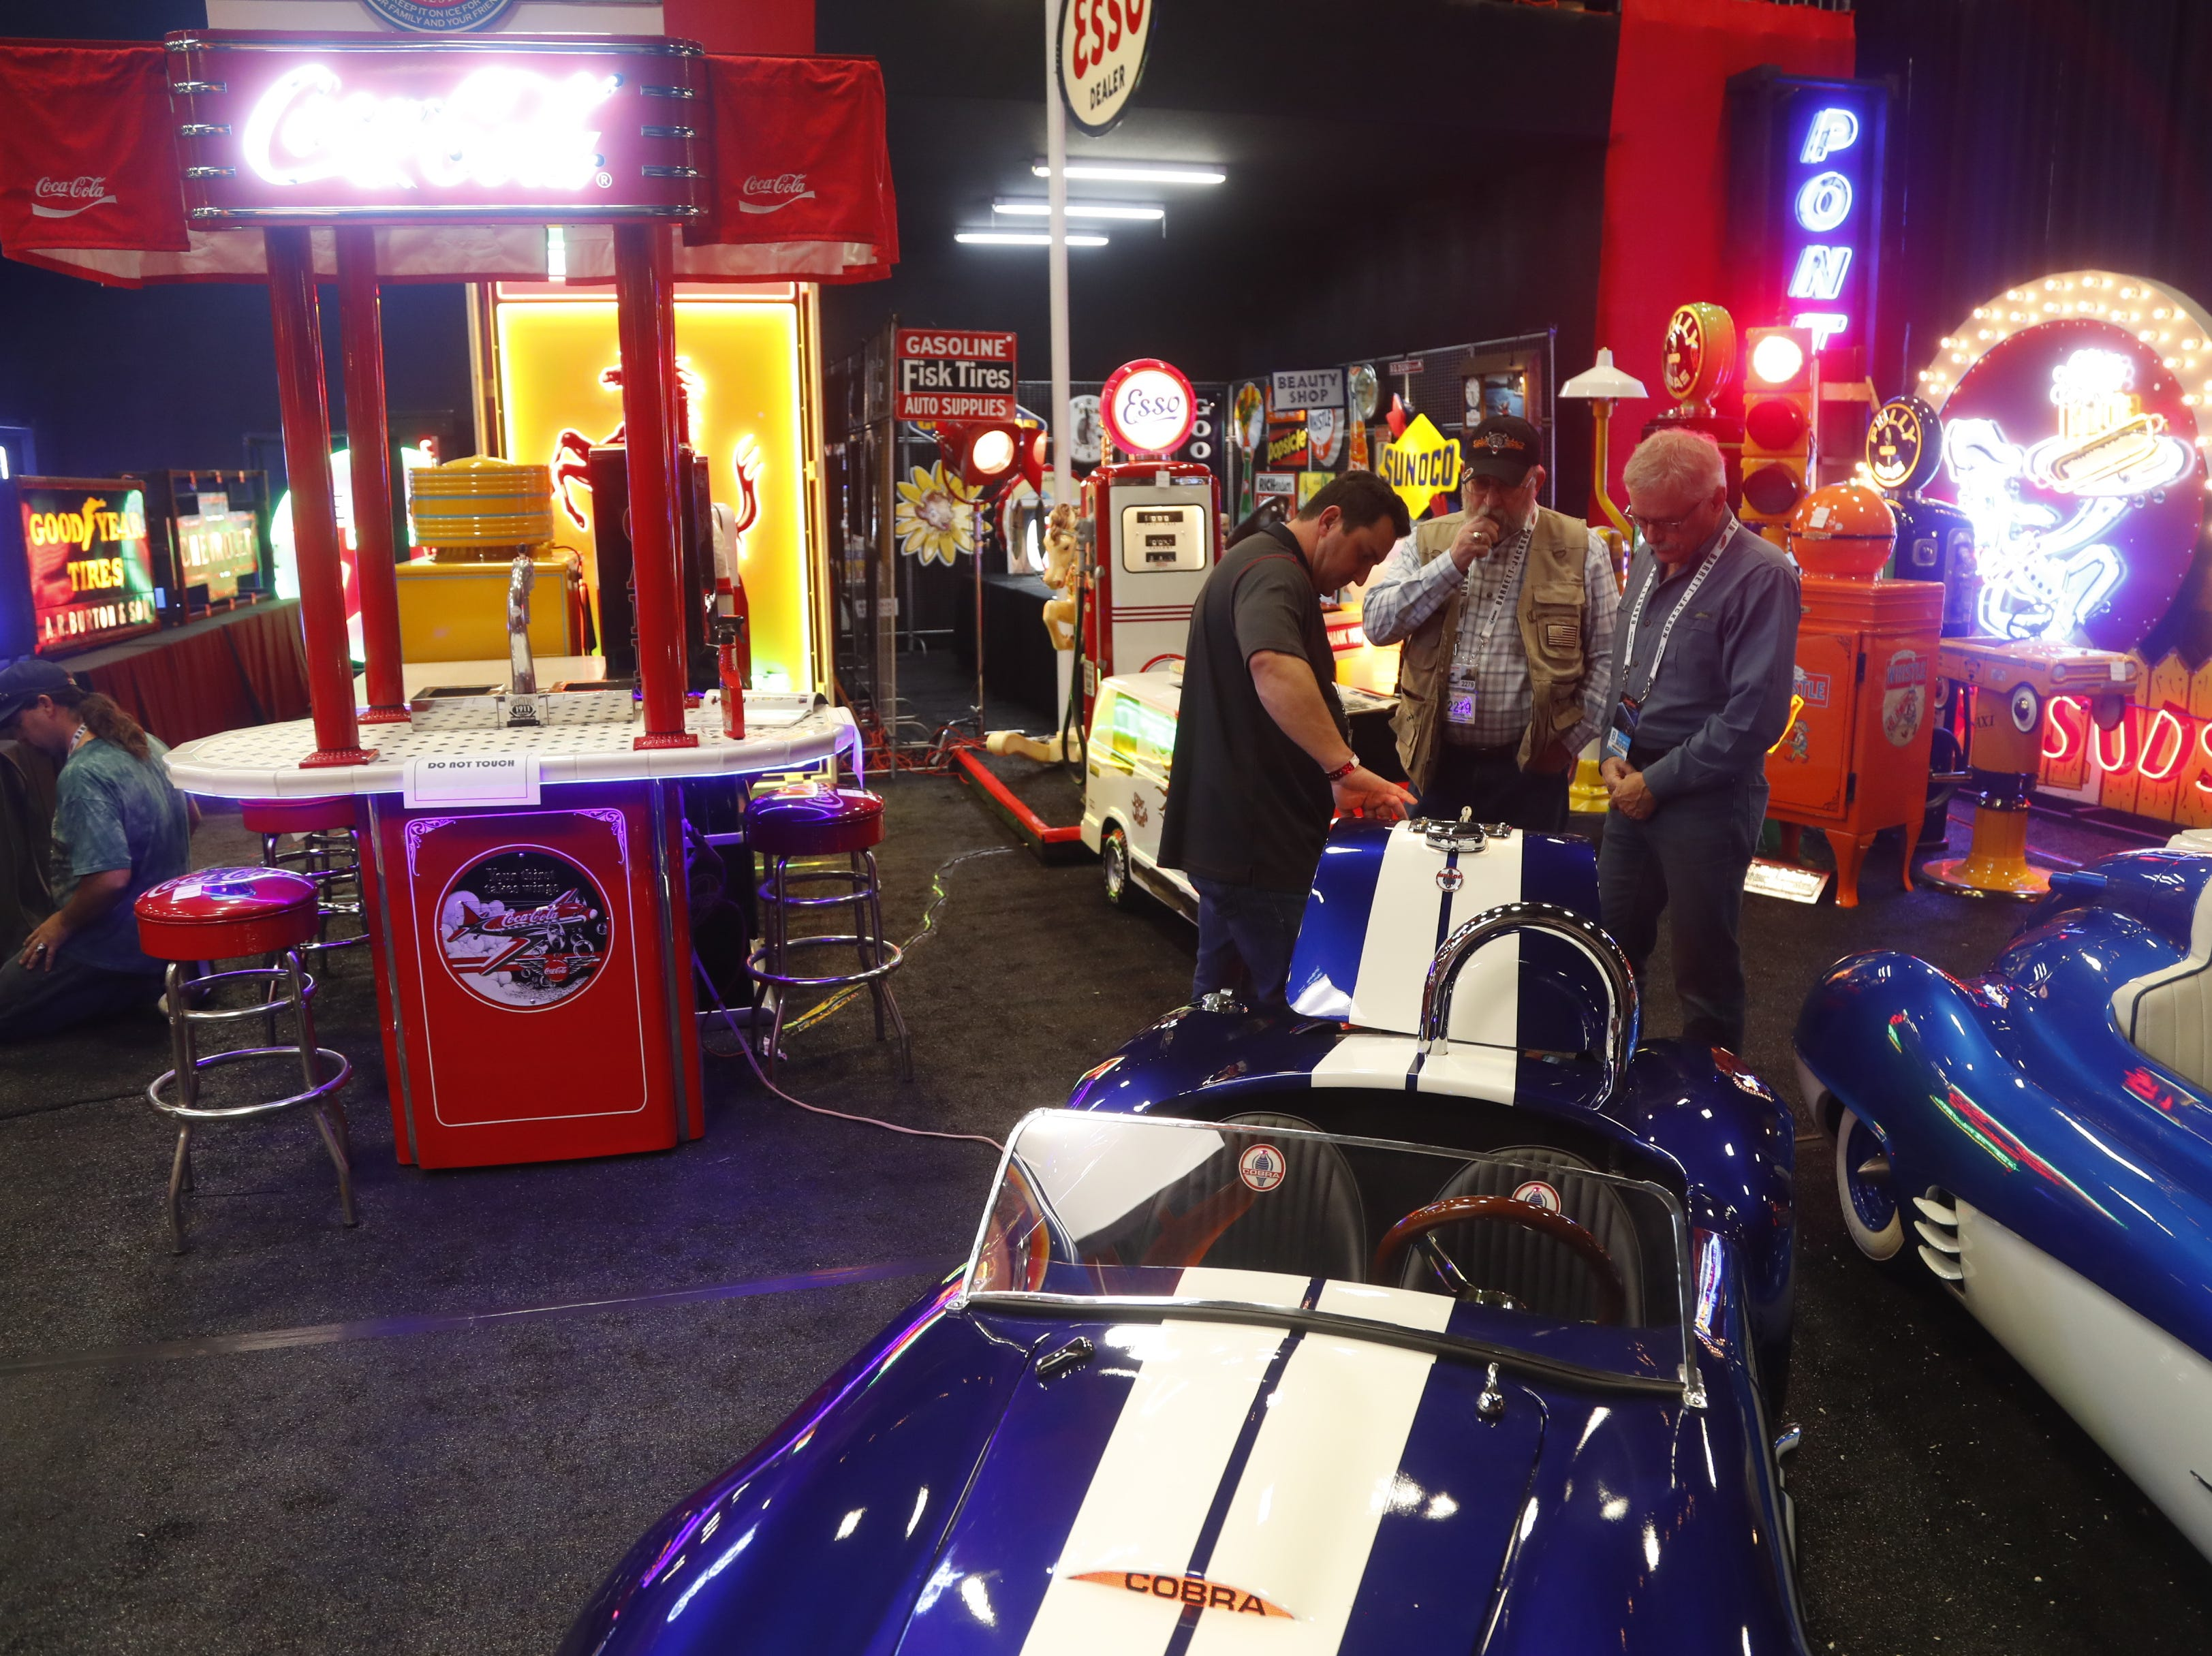 People look over the car memorabilia for auction and sale at the Barrett-Jackson Car Auction in WestWorld in Scottsdale on Jan. 14, 2019.